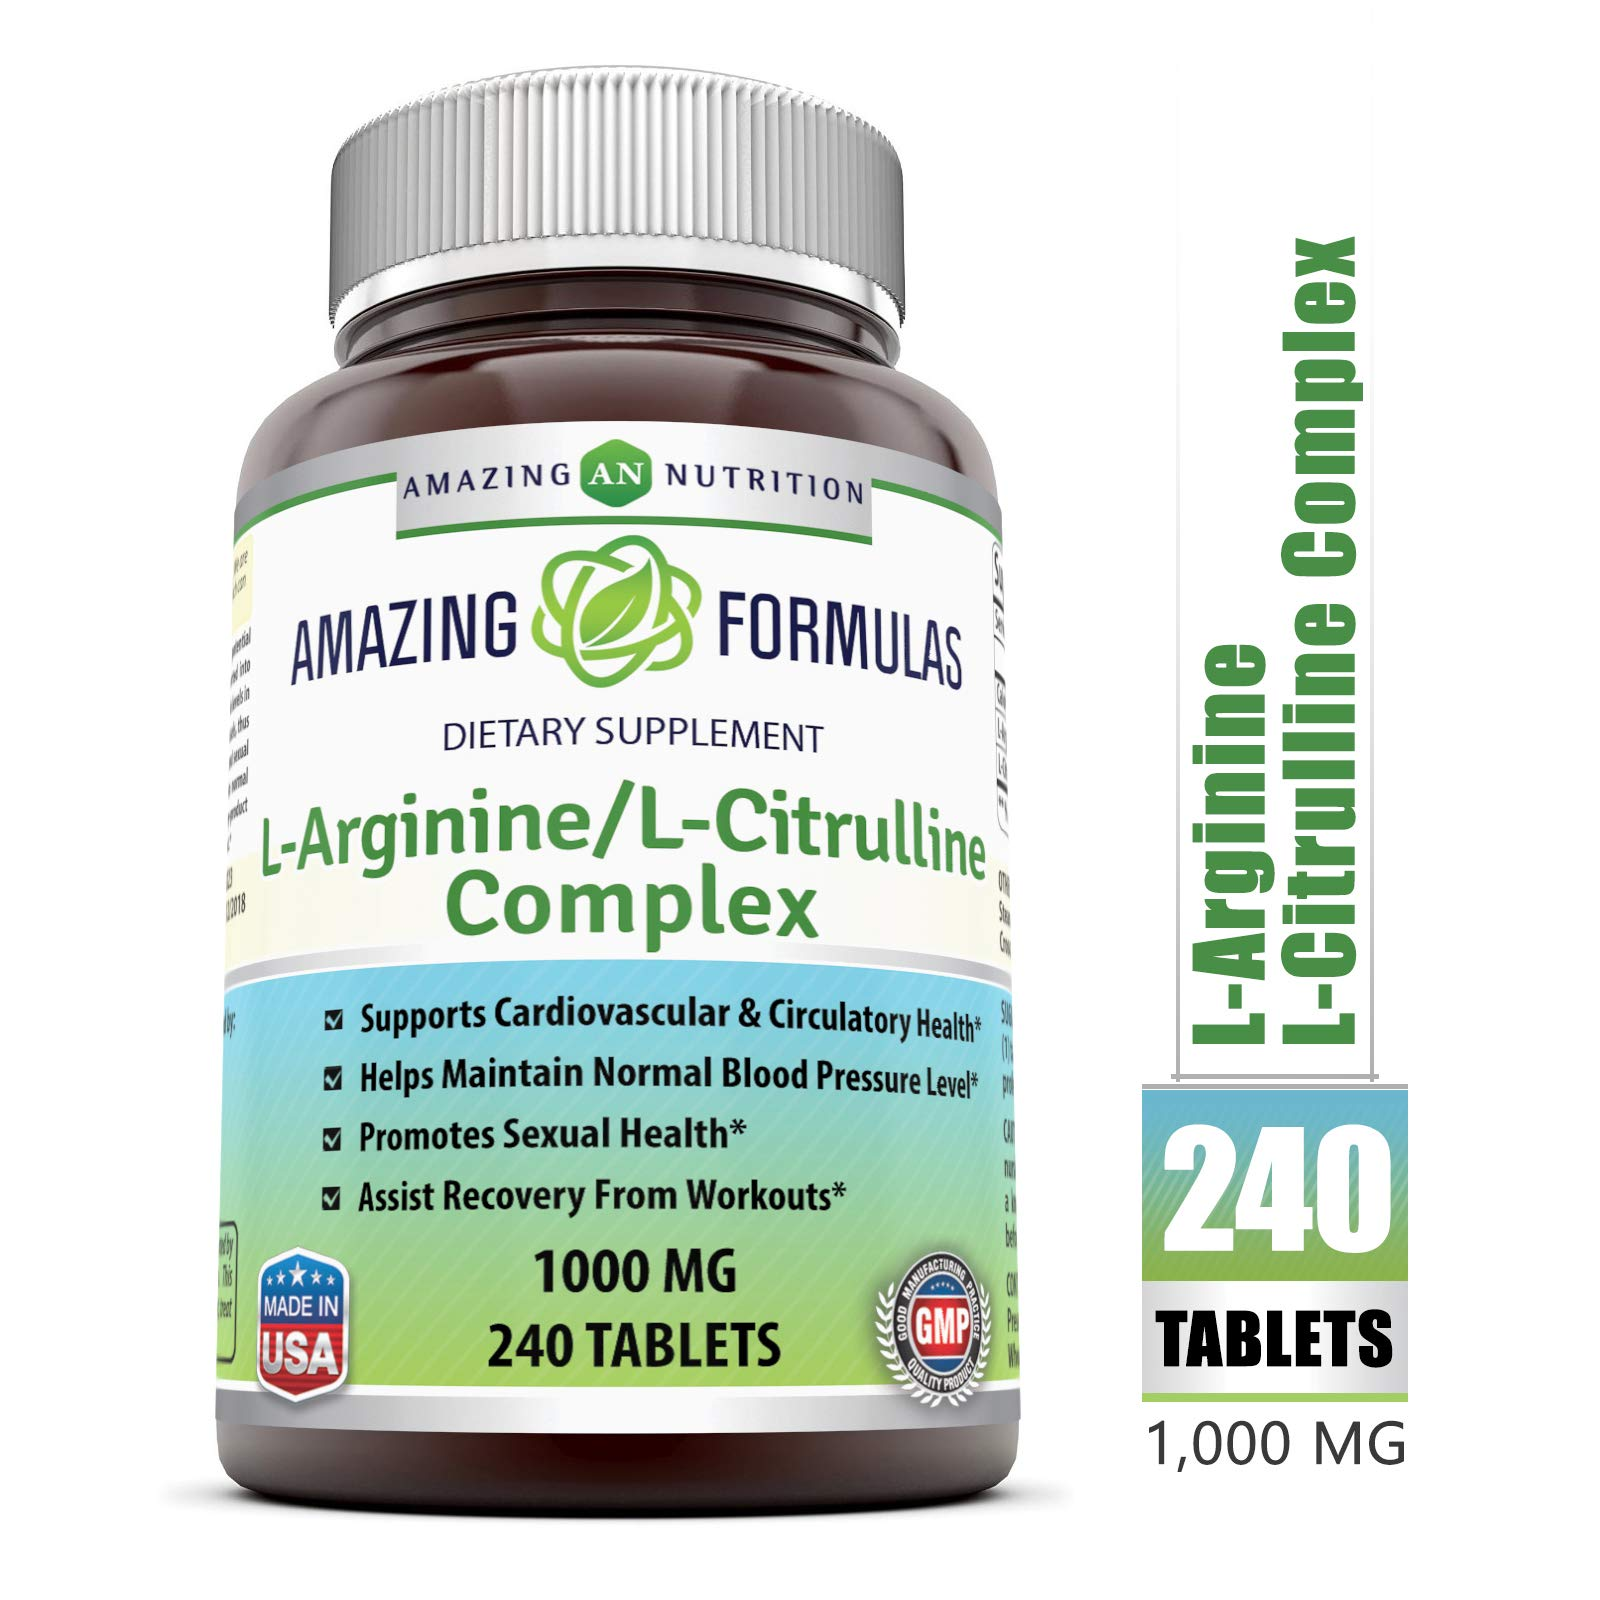 Amazing Nutrition L-Arginine/L-Citrulline Complex 1000 Mg* Combines Two Amino Acids with Potential Health Benefits * Supports Energy Production * Ads to Improve Athletic Performance (240 Tablets) by Amazing Nutrition